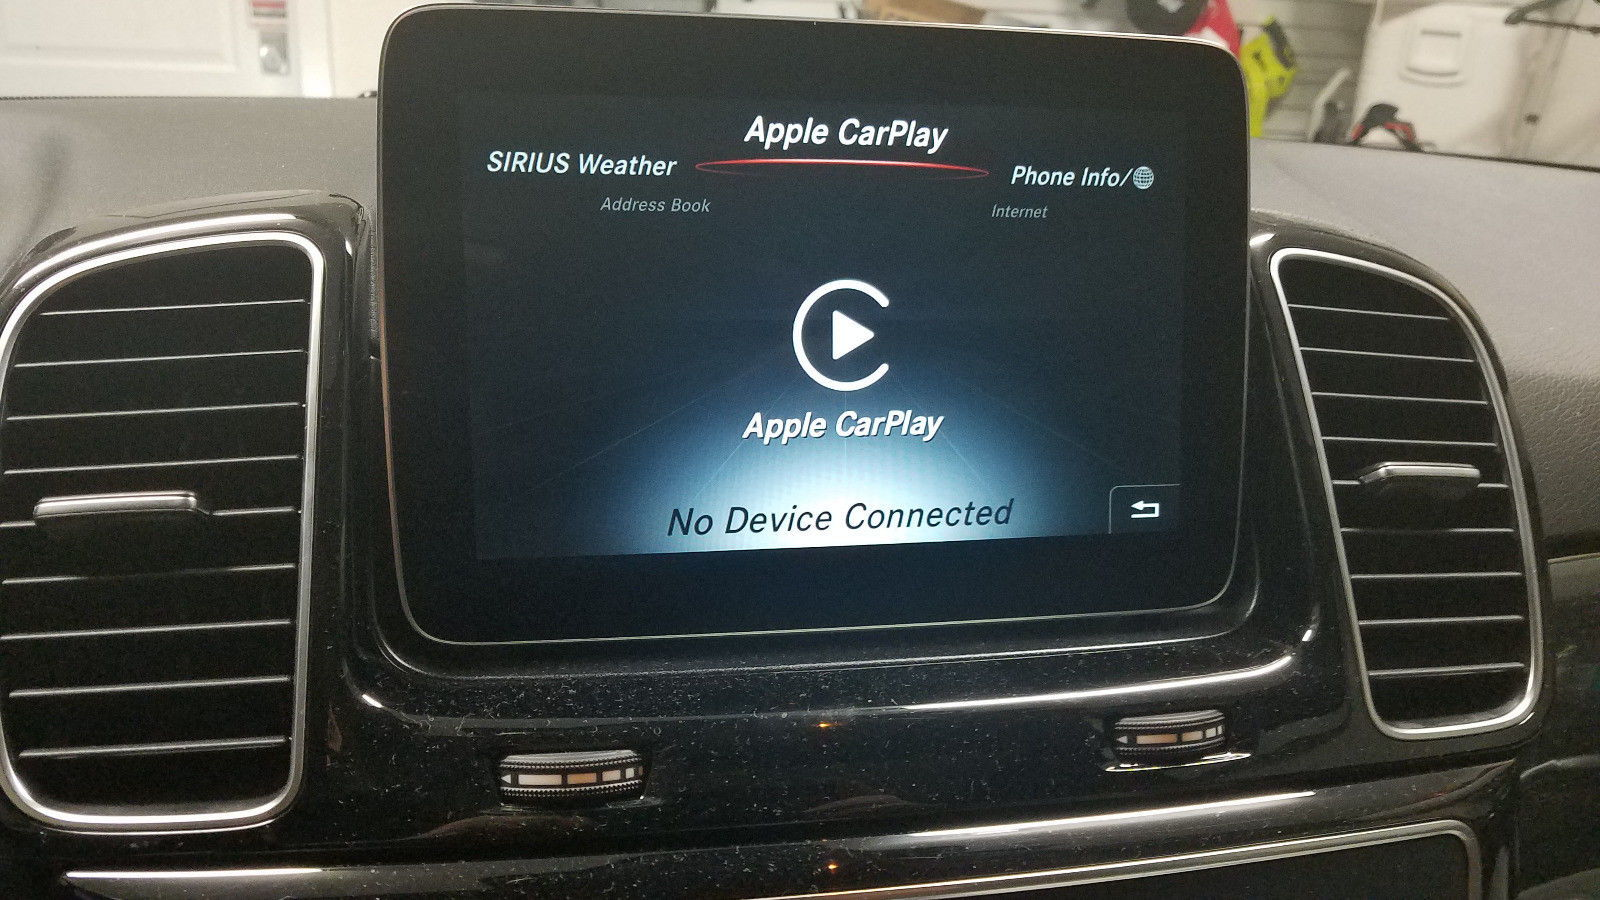 Mercedes carplay android auto activation support NTG 5 1 W176 W204 W246 W212